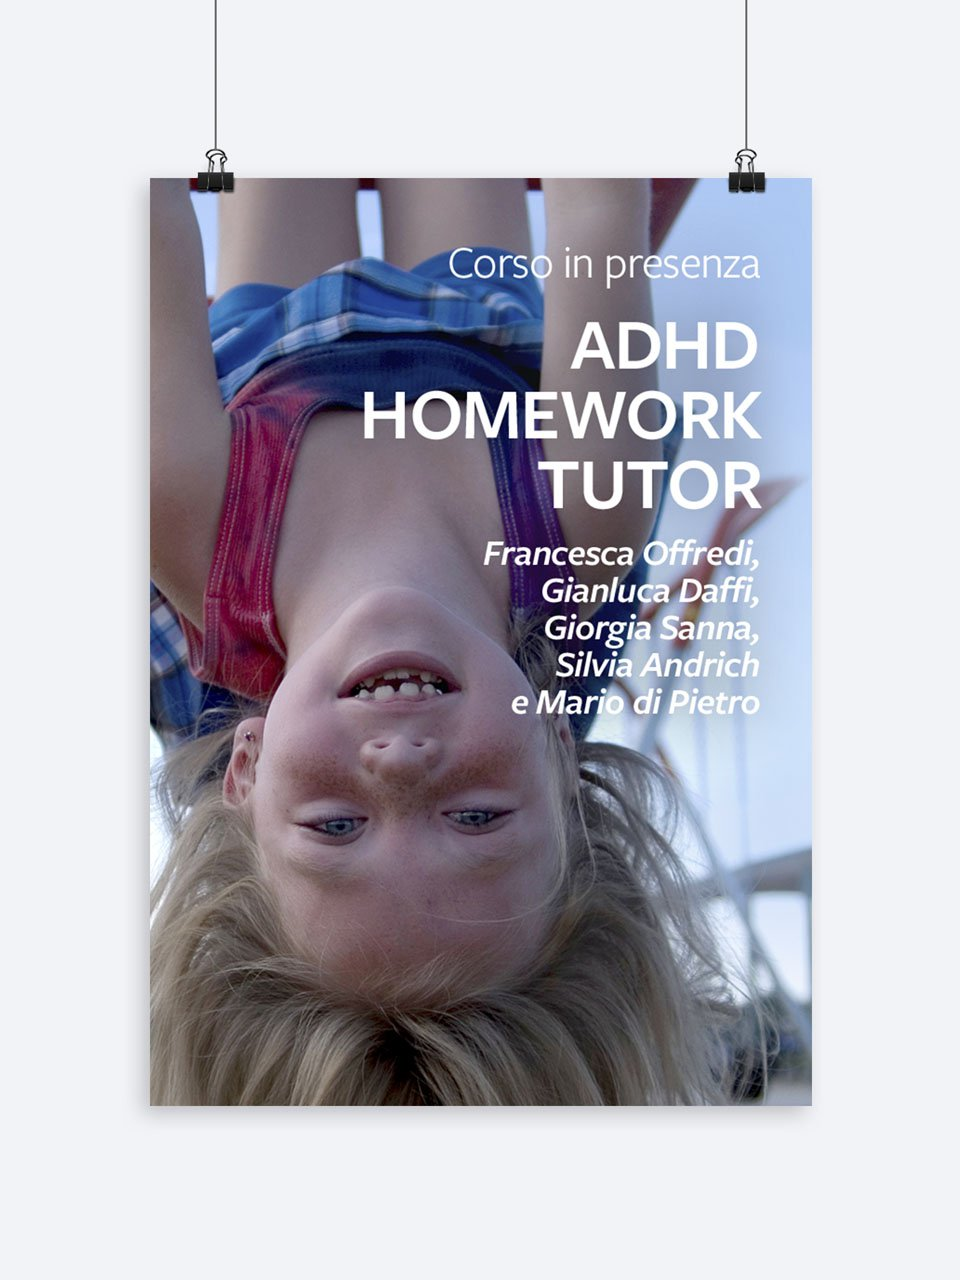 ADHD Homework Tutor®. - Sviluppare l'intelligenza emotiva - App e software - Erickson